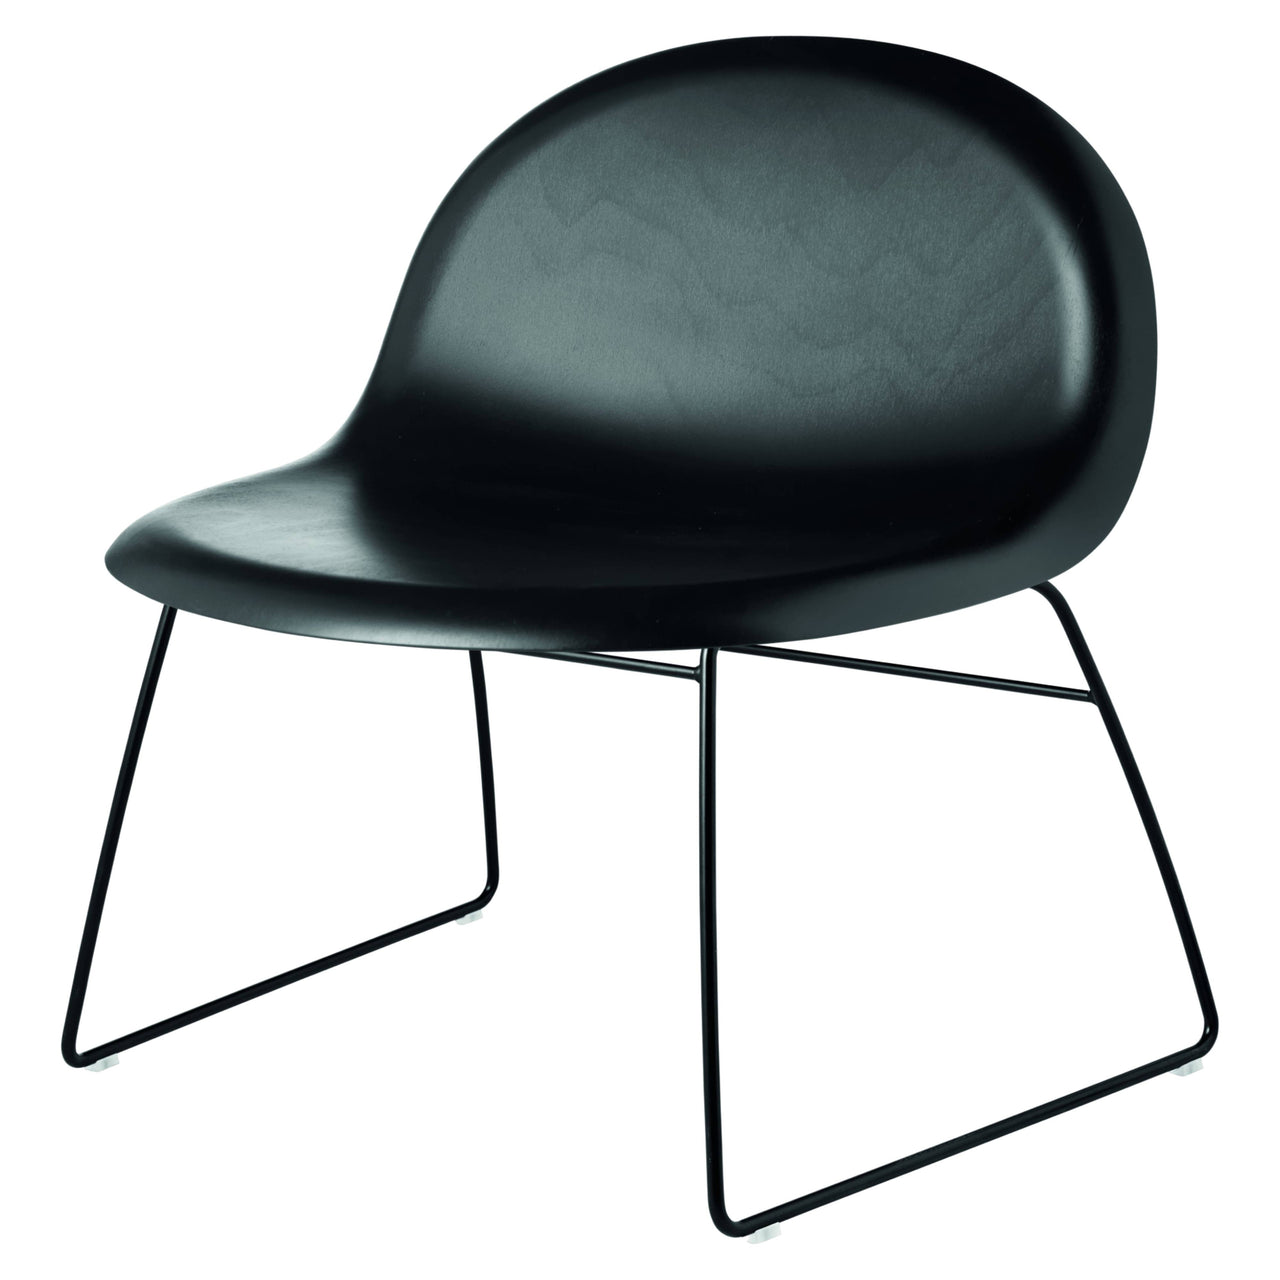 3D Lounge Chair Sledge Base : Black Stained Beech + Black Semi-Matte Base + Plastic Glides